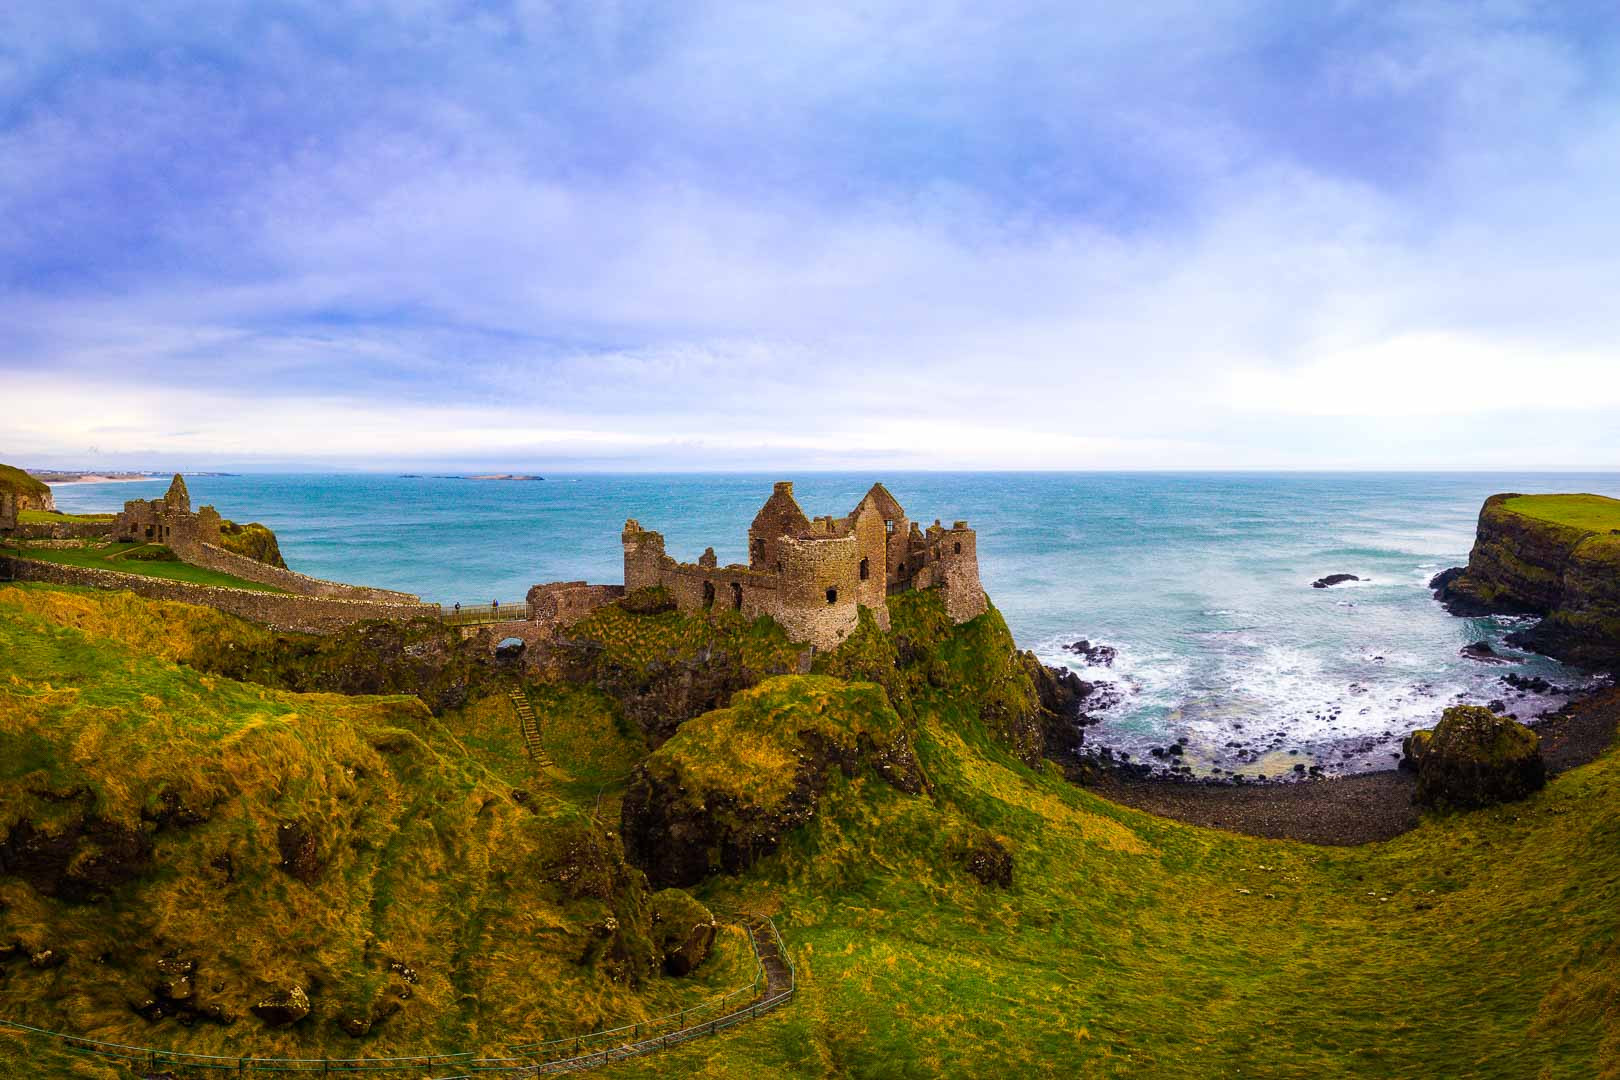 dunluce castle in northern ireland united kingdom by kevmrc